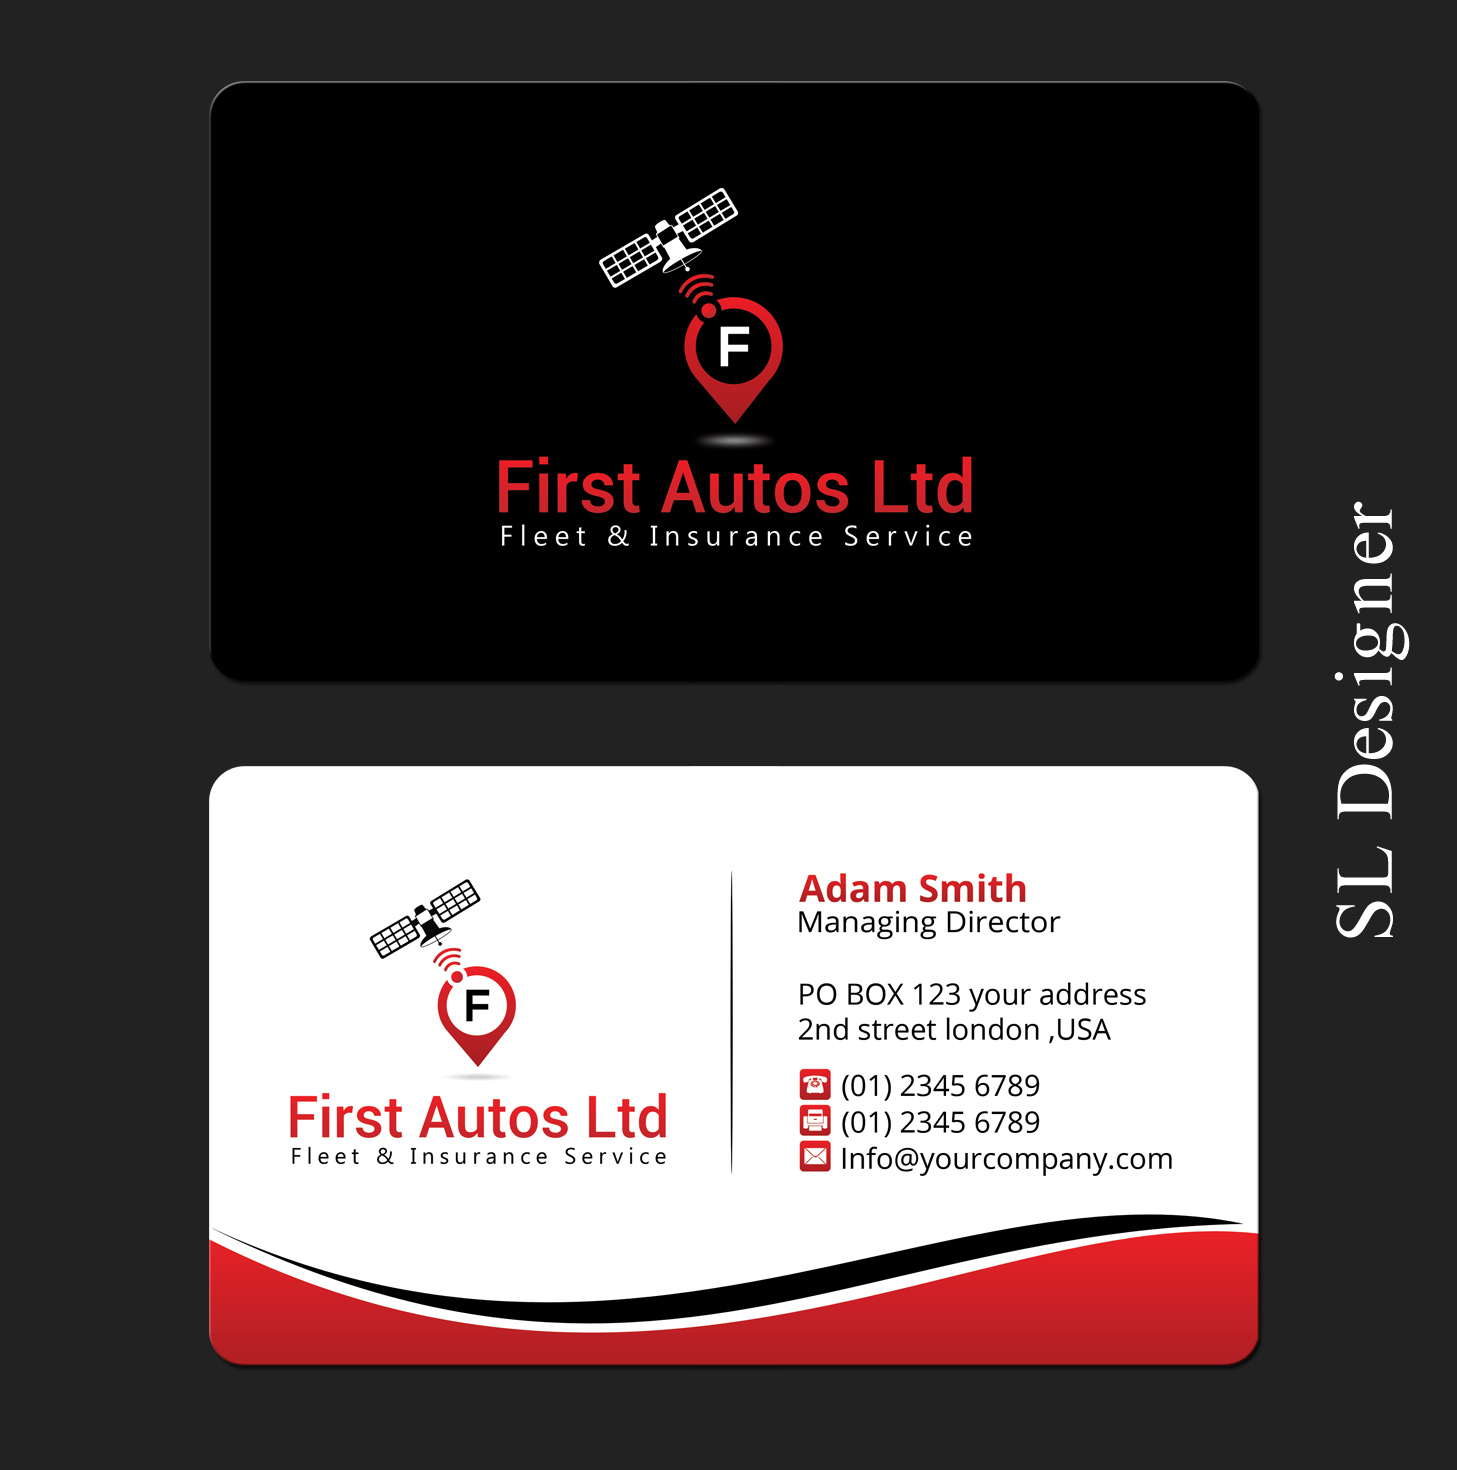 modern colorful business card design for first autos ltd by sl